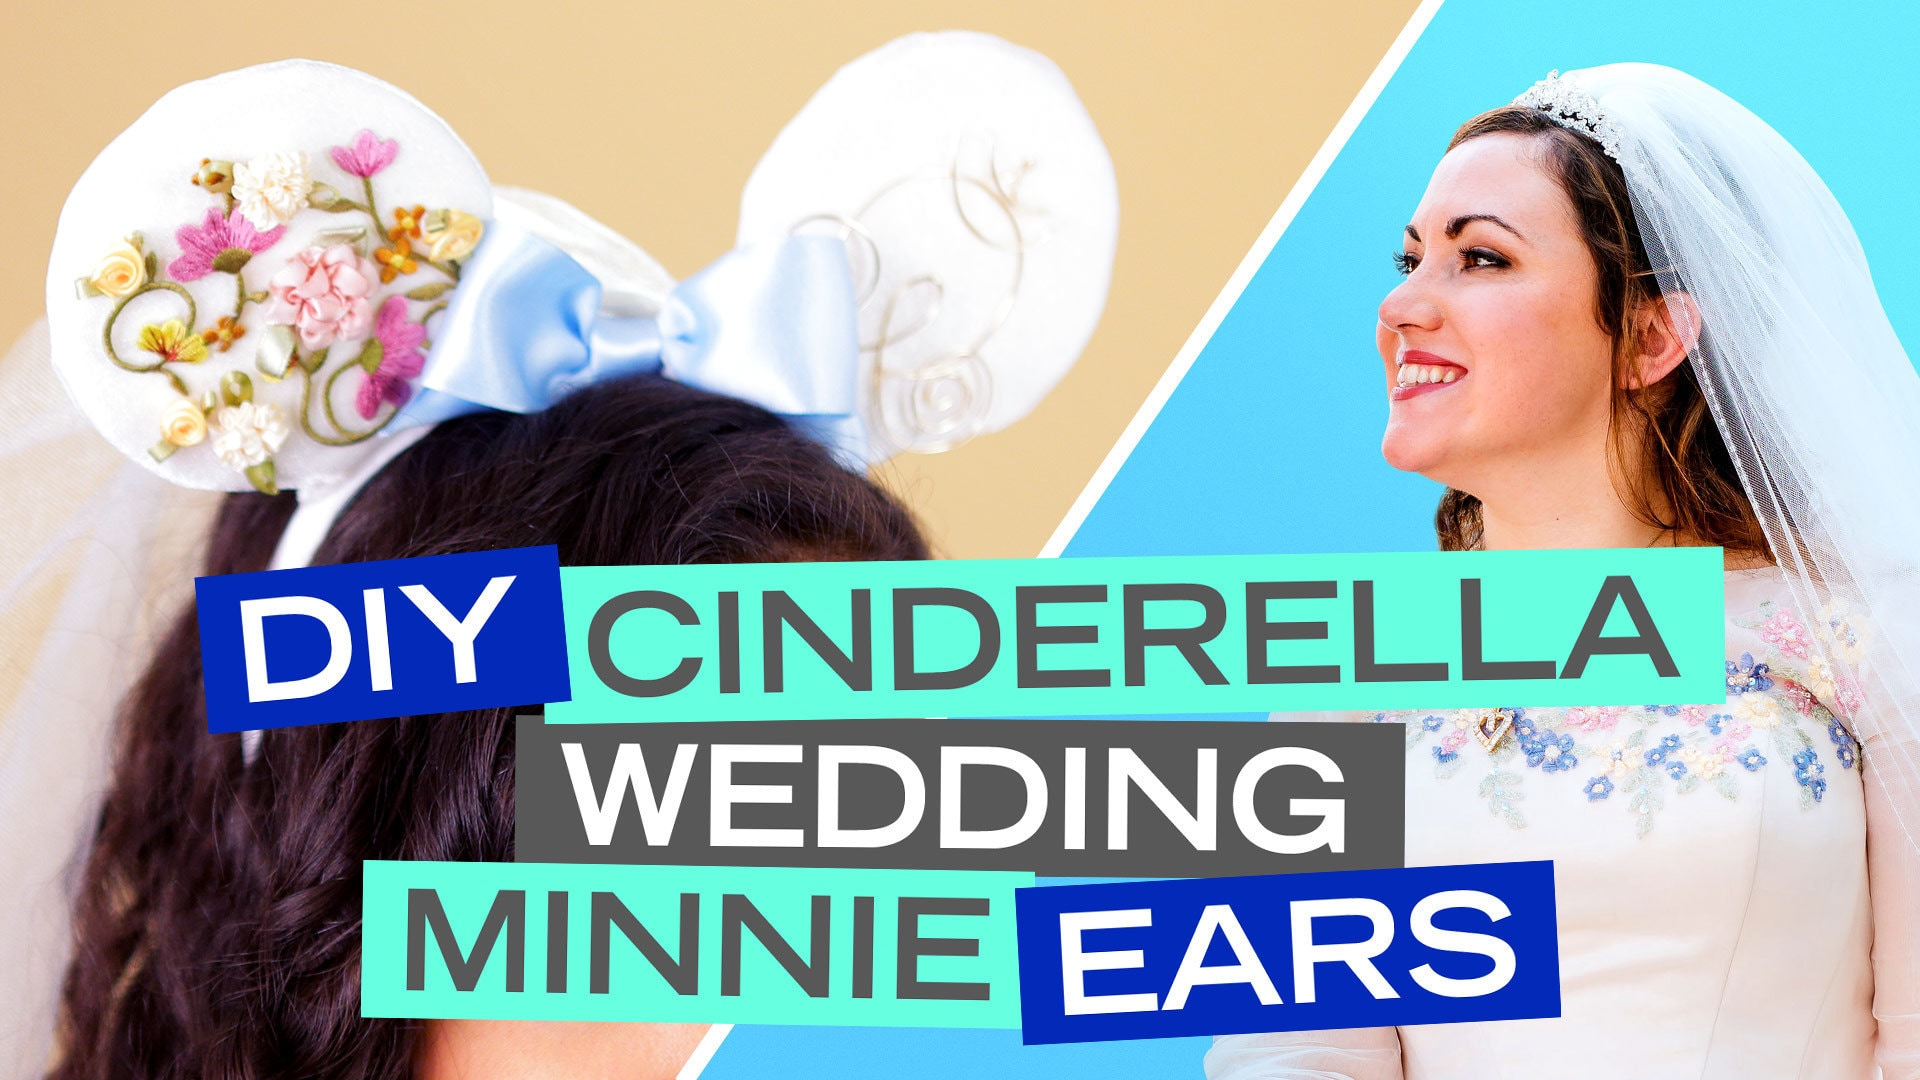 DIY: Cinderella Wedding Minnie Ears